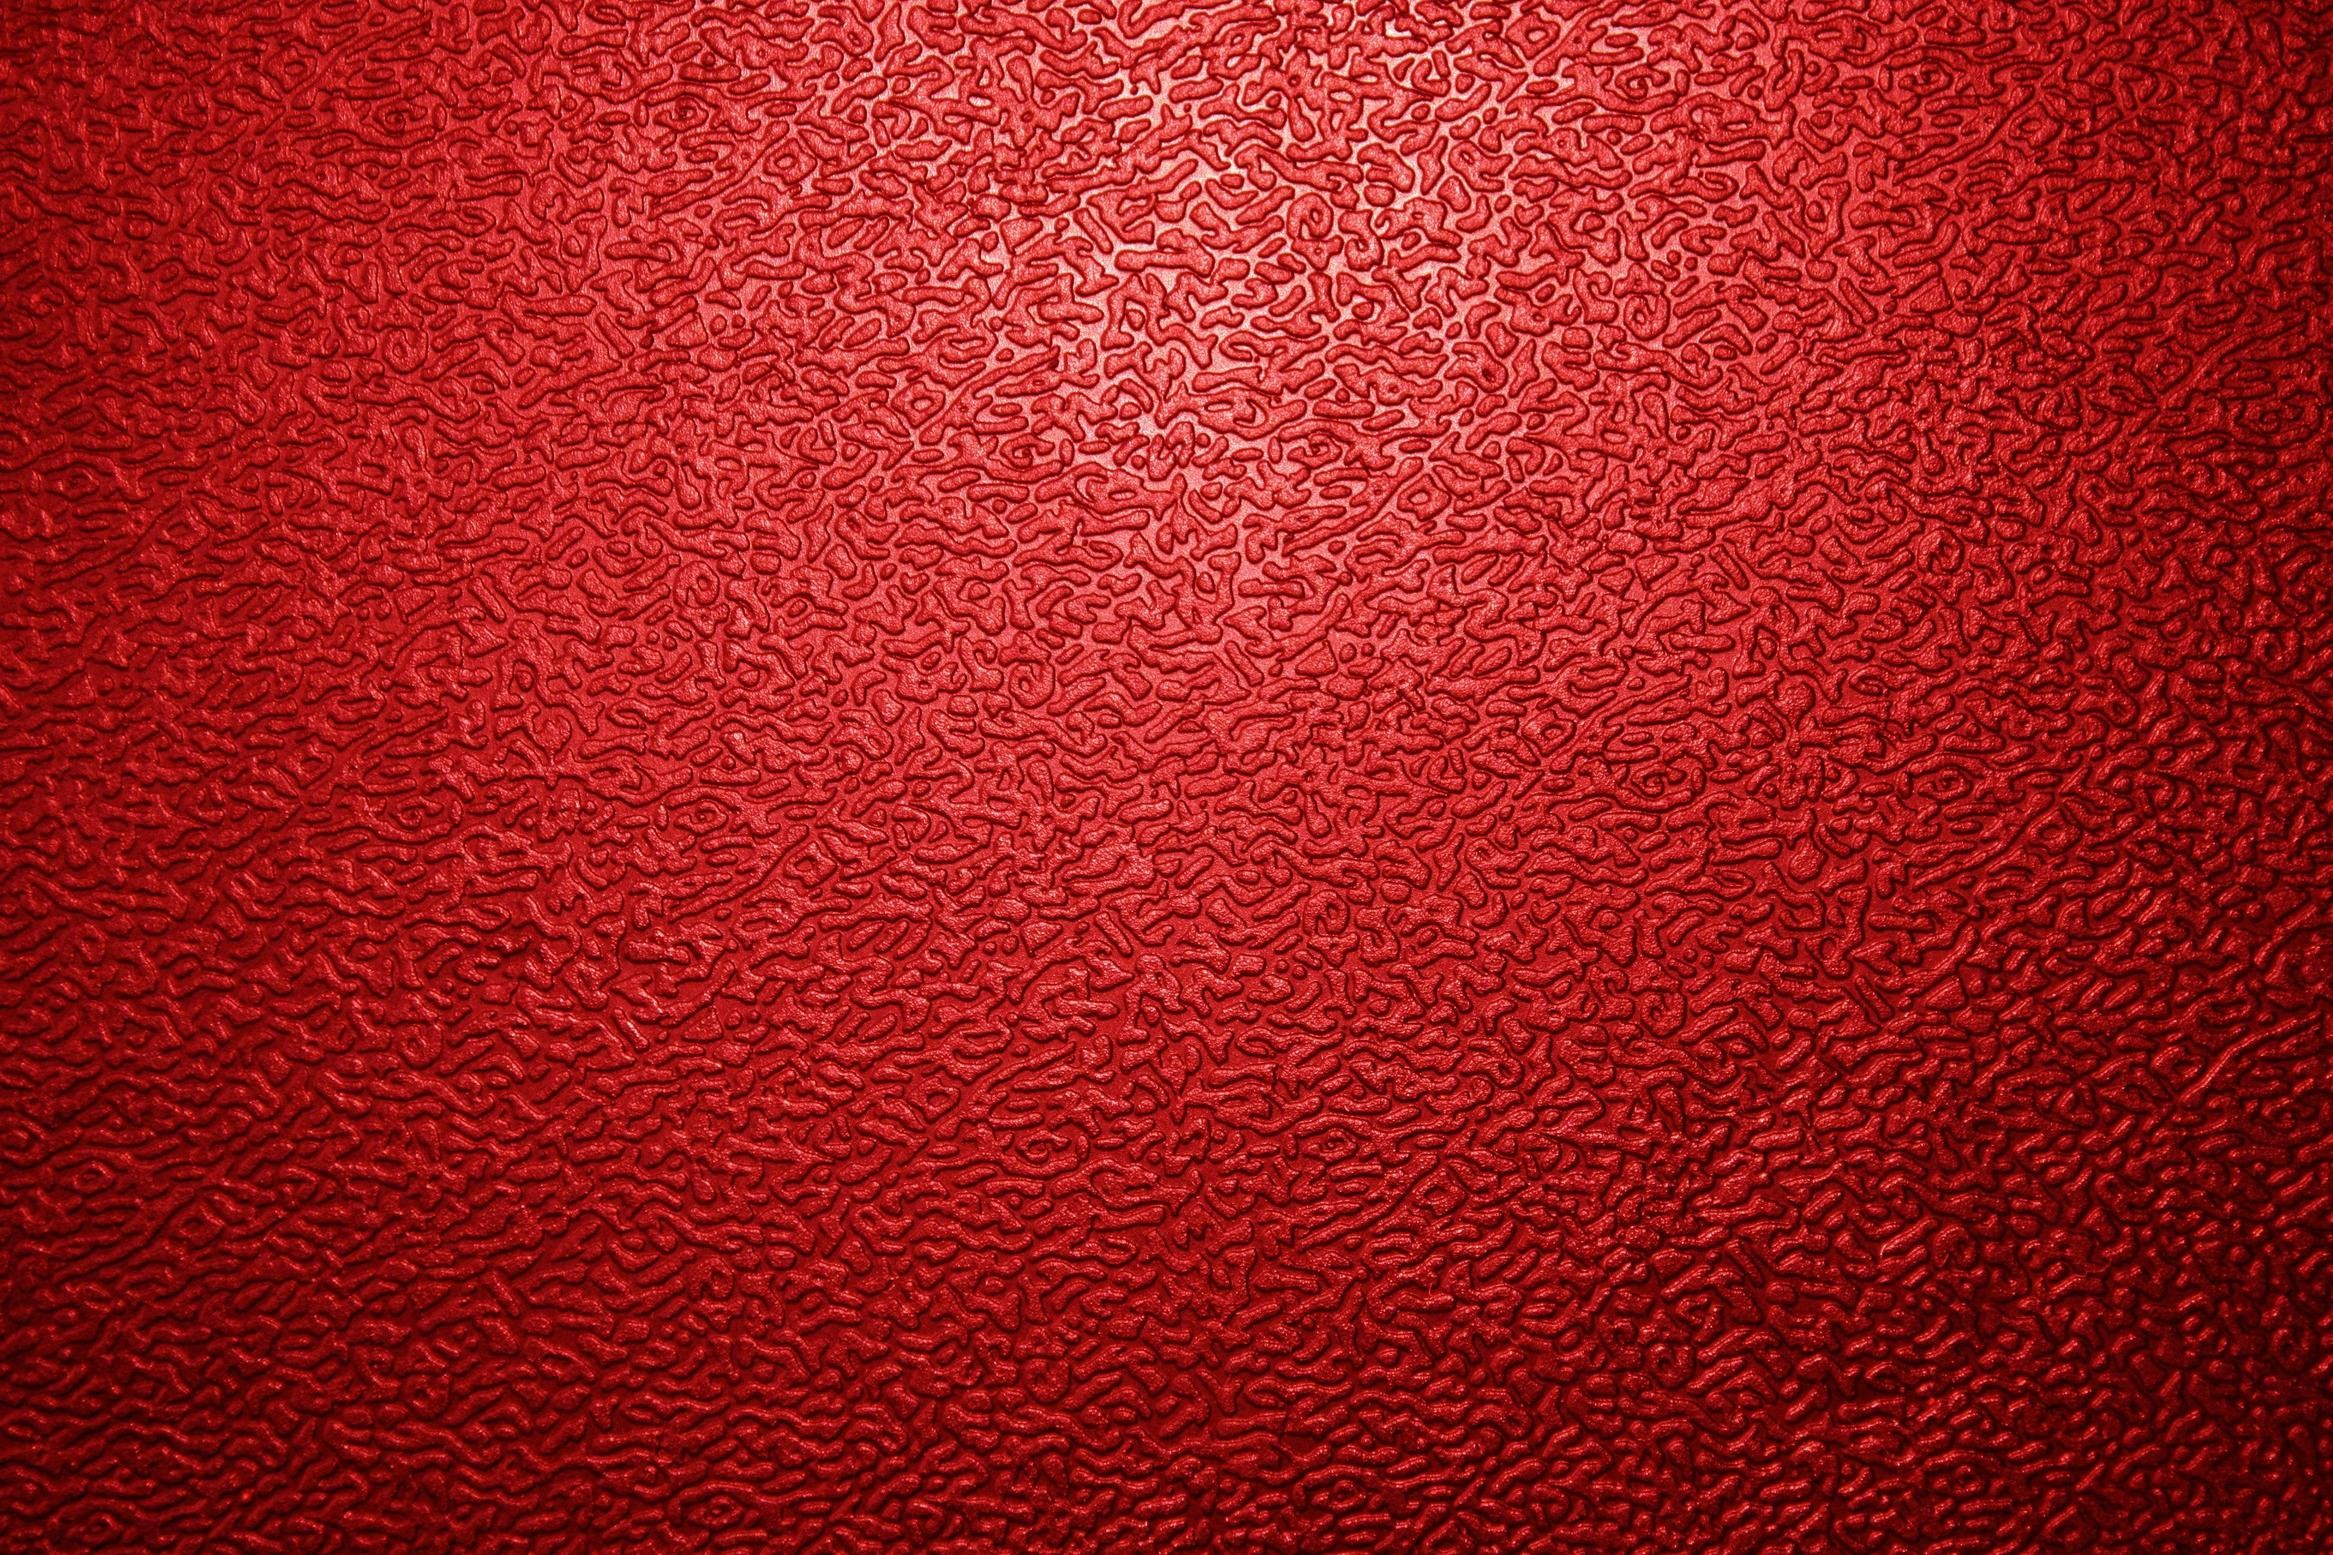 Full Size Red Background Hd X Mobile Pic Mch04033 Dzbc Org